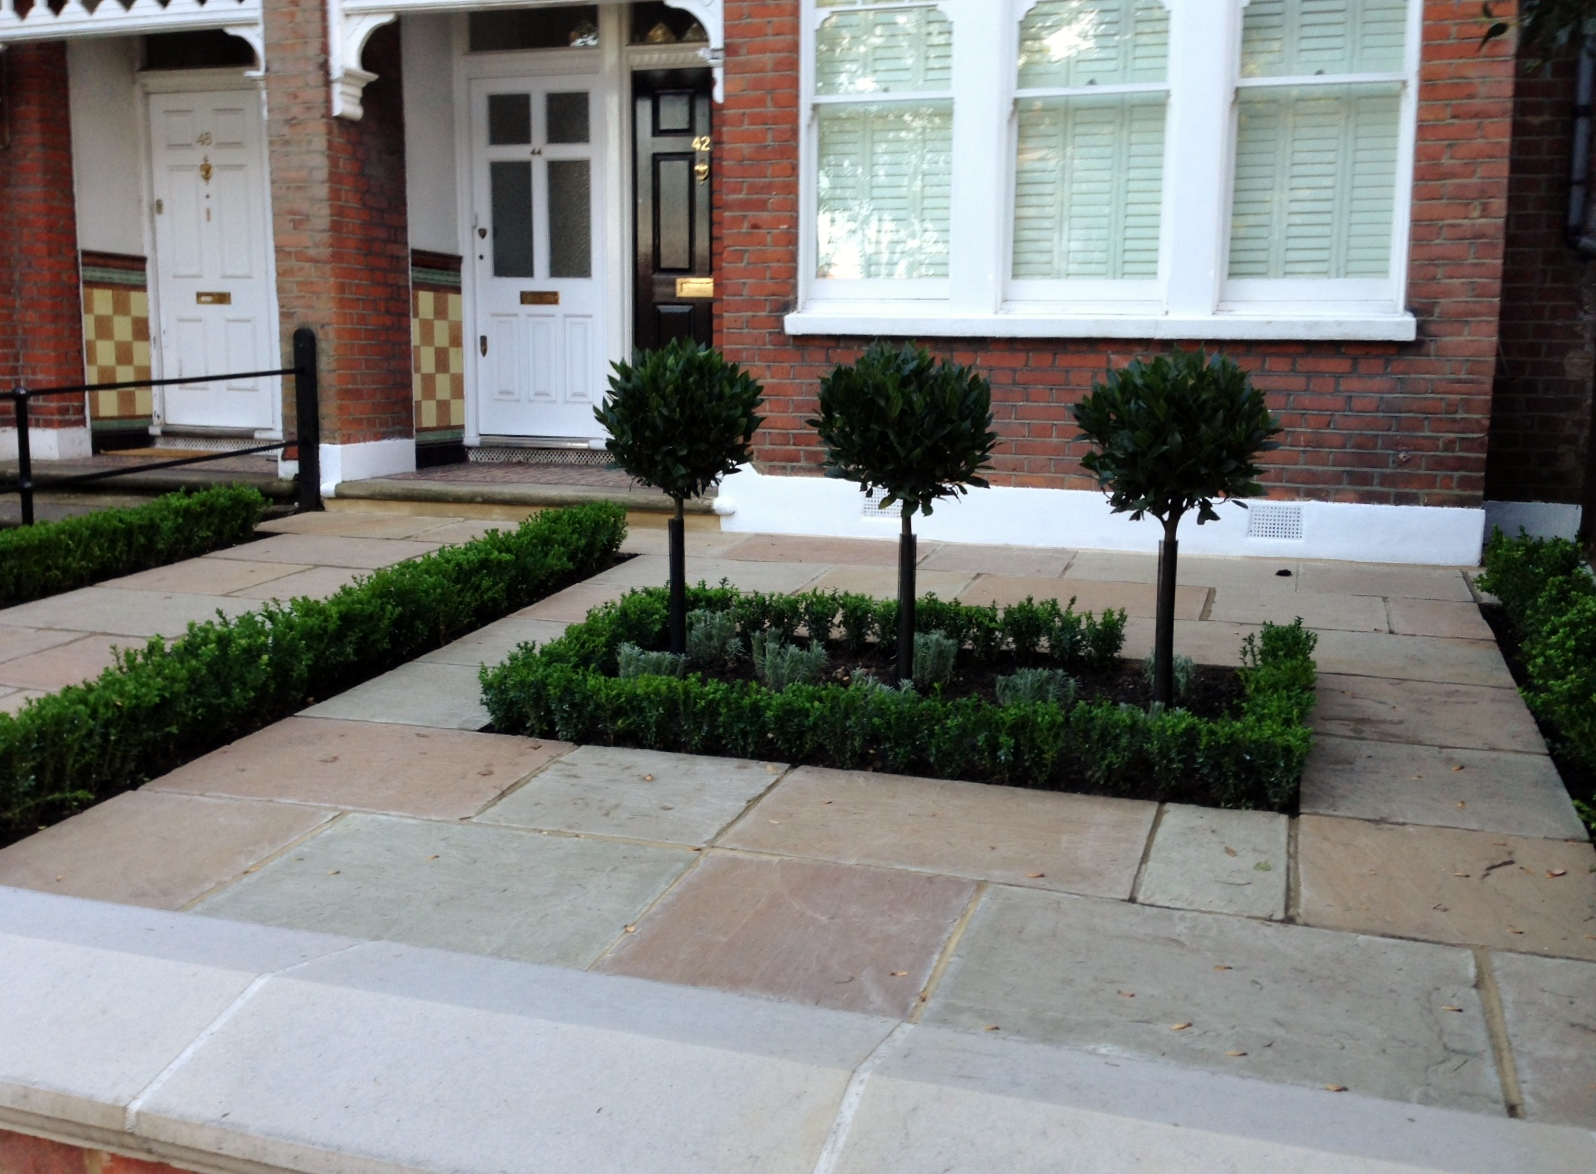 Ideas for a slope: Front garden design topiary